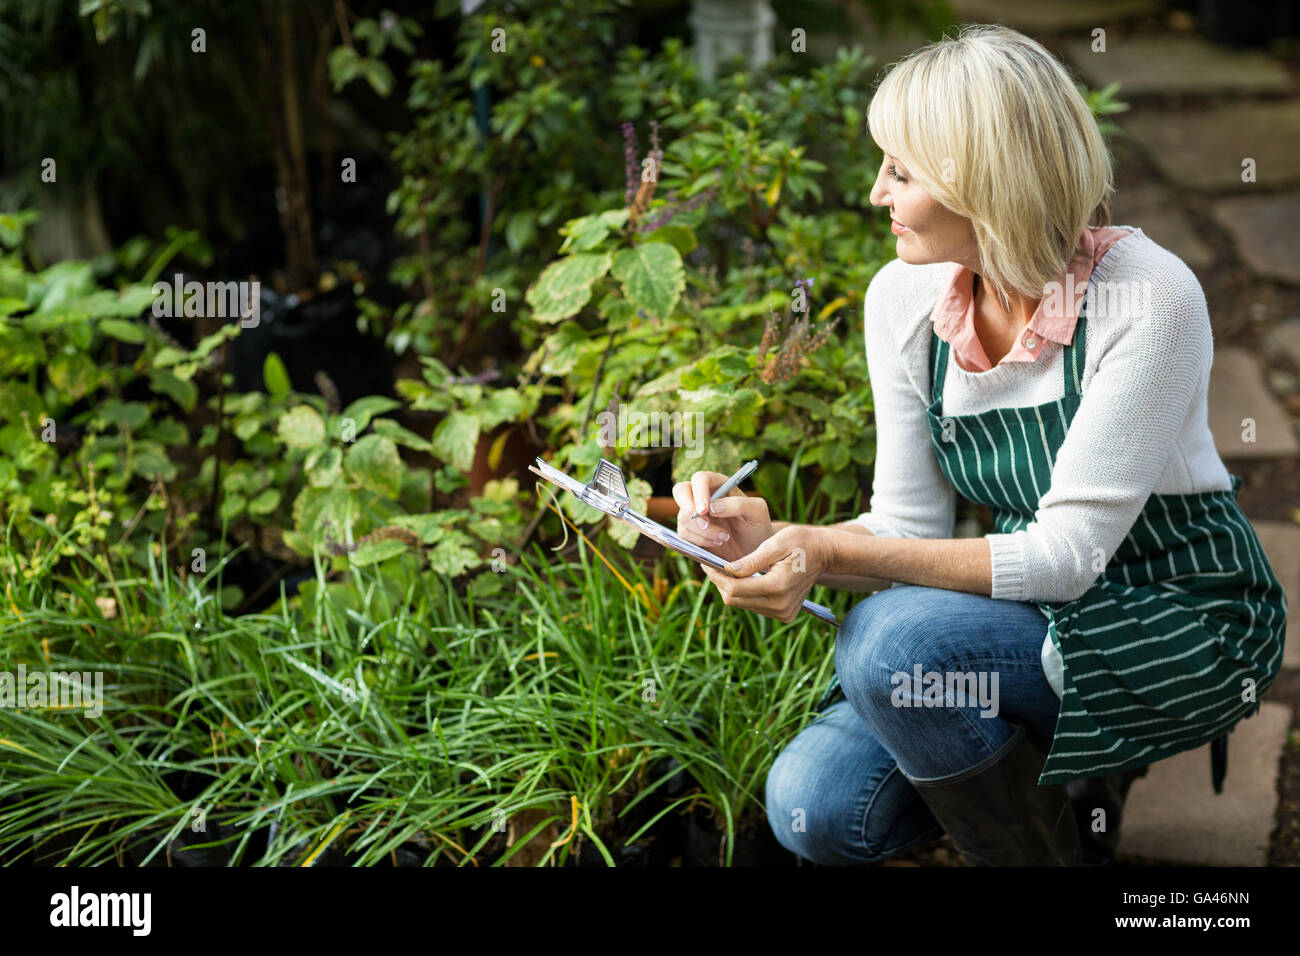 Woman writing on clipboard while examining plants - Stock Image